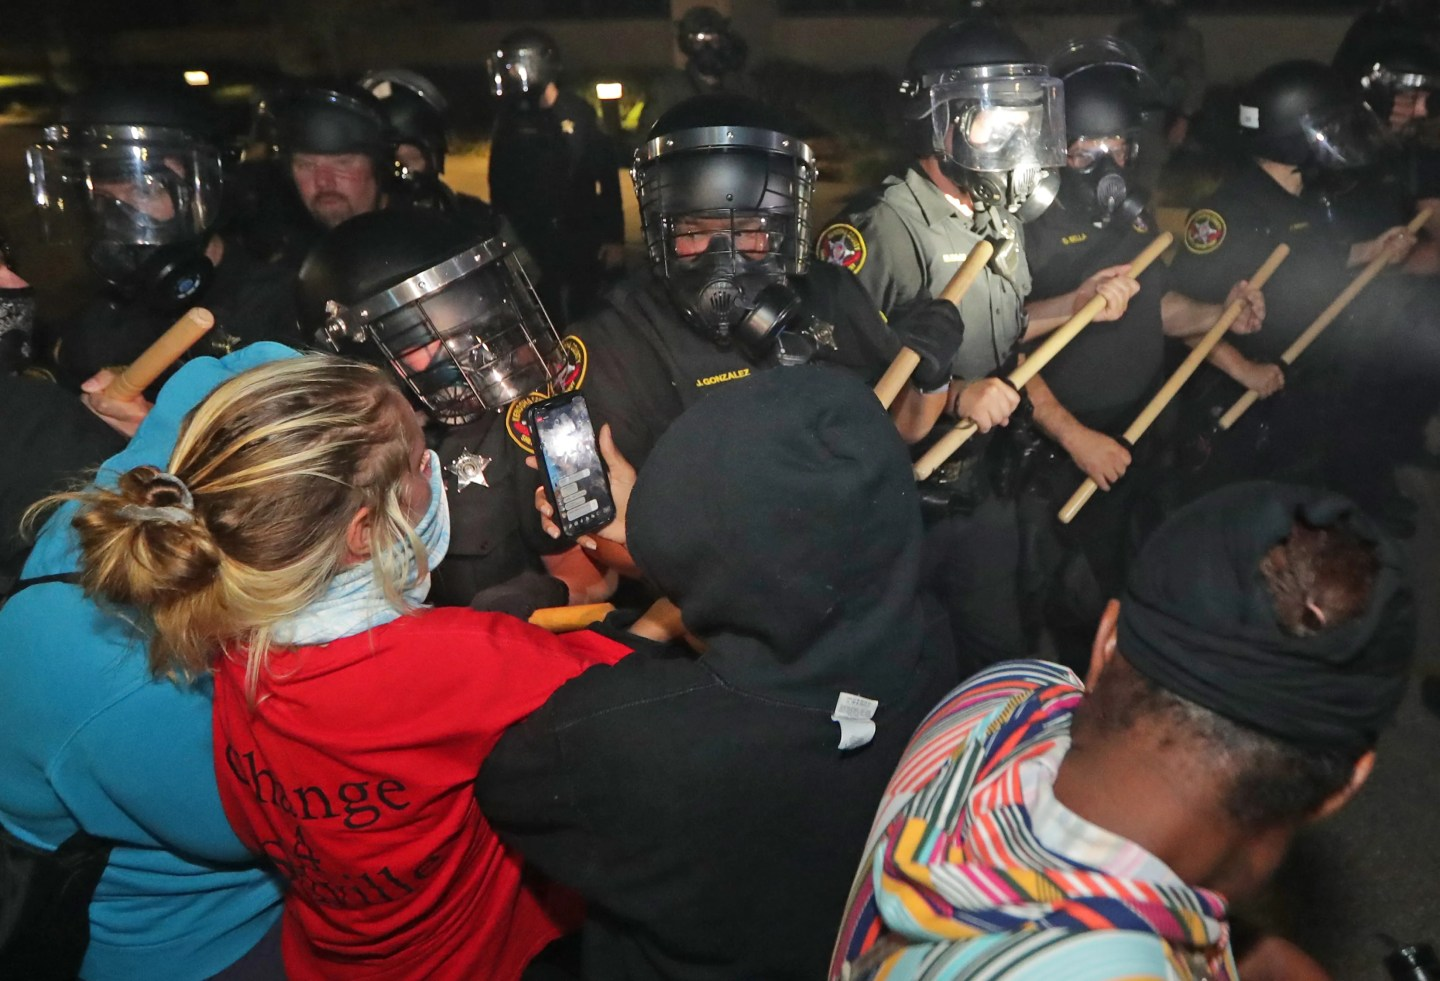 Police in riot gear confront protesters outside the police department in Kenosha, Wisconsin, on Sunday, Aug. 23, 2020. Kenosha police shot a man Sunday evening, setting off unrest in the city after a video appeared to show the officer firing several shots at close range into the man's back.